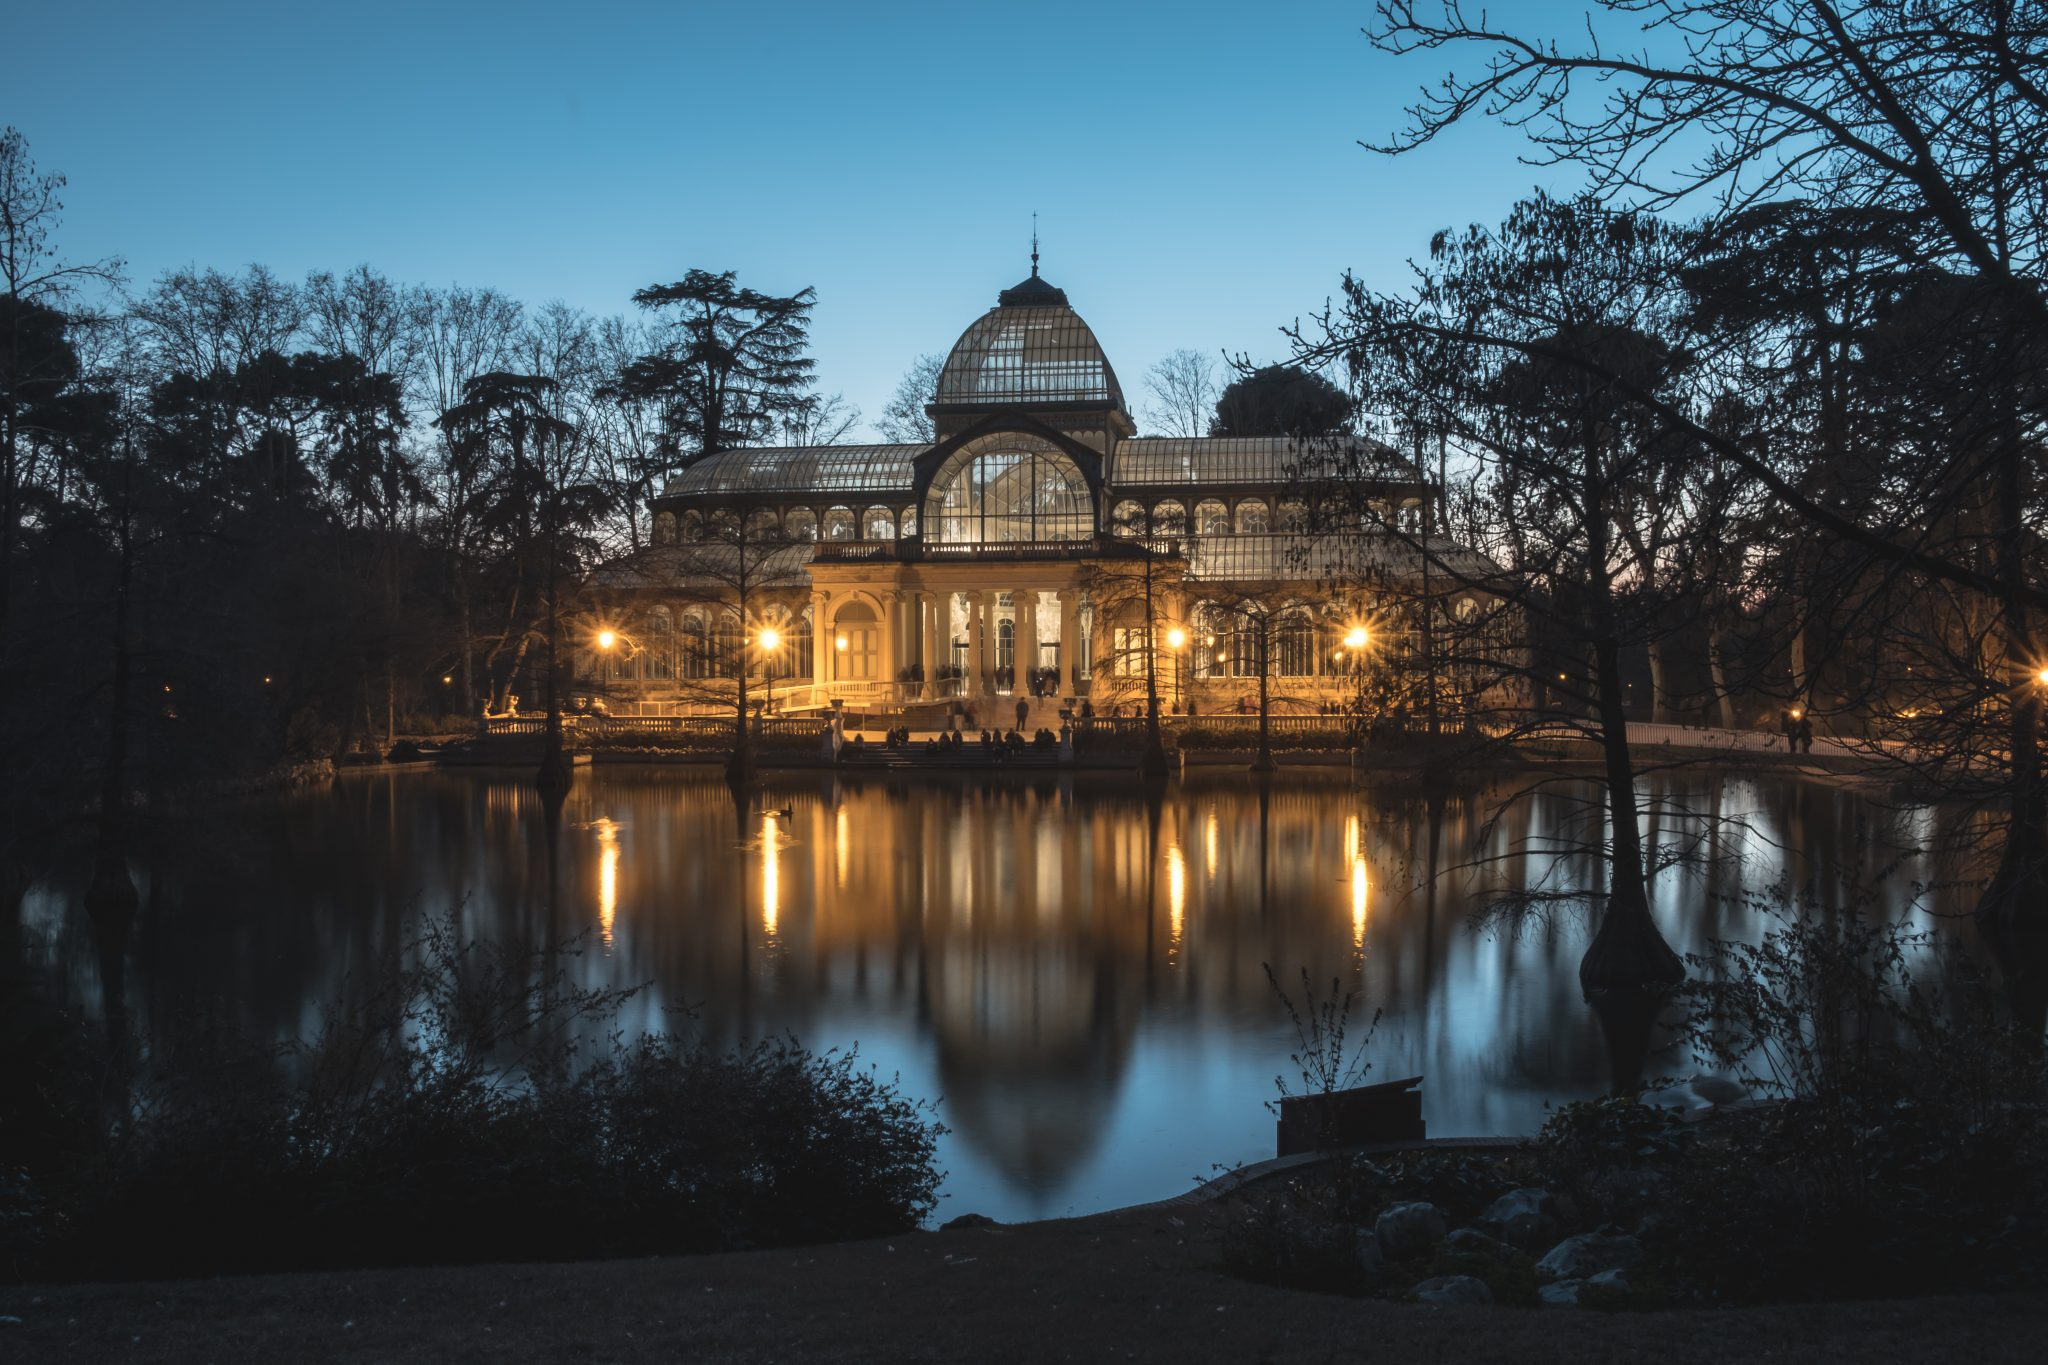 Palacio de Cristal in Retiro Park at night by Jo Kassis